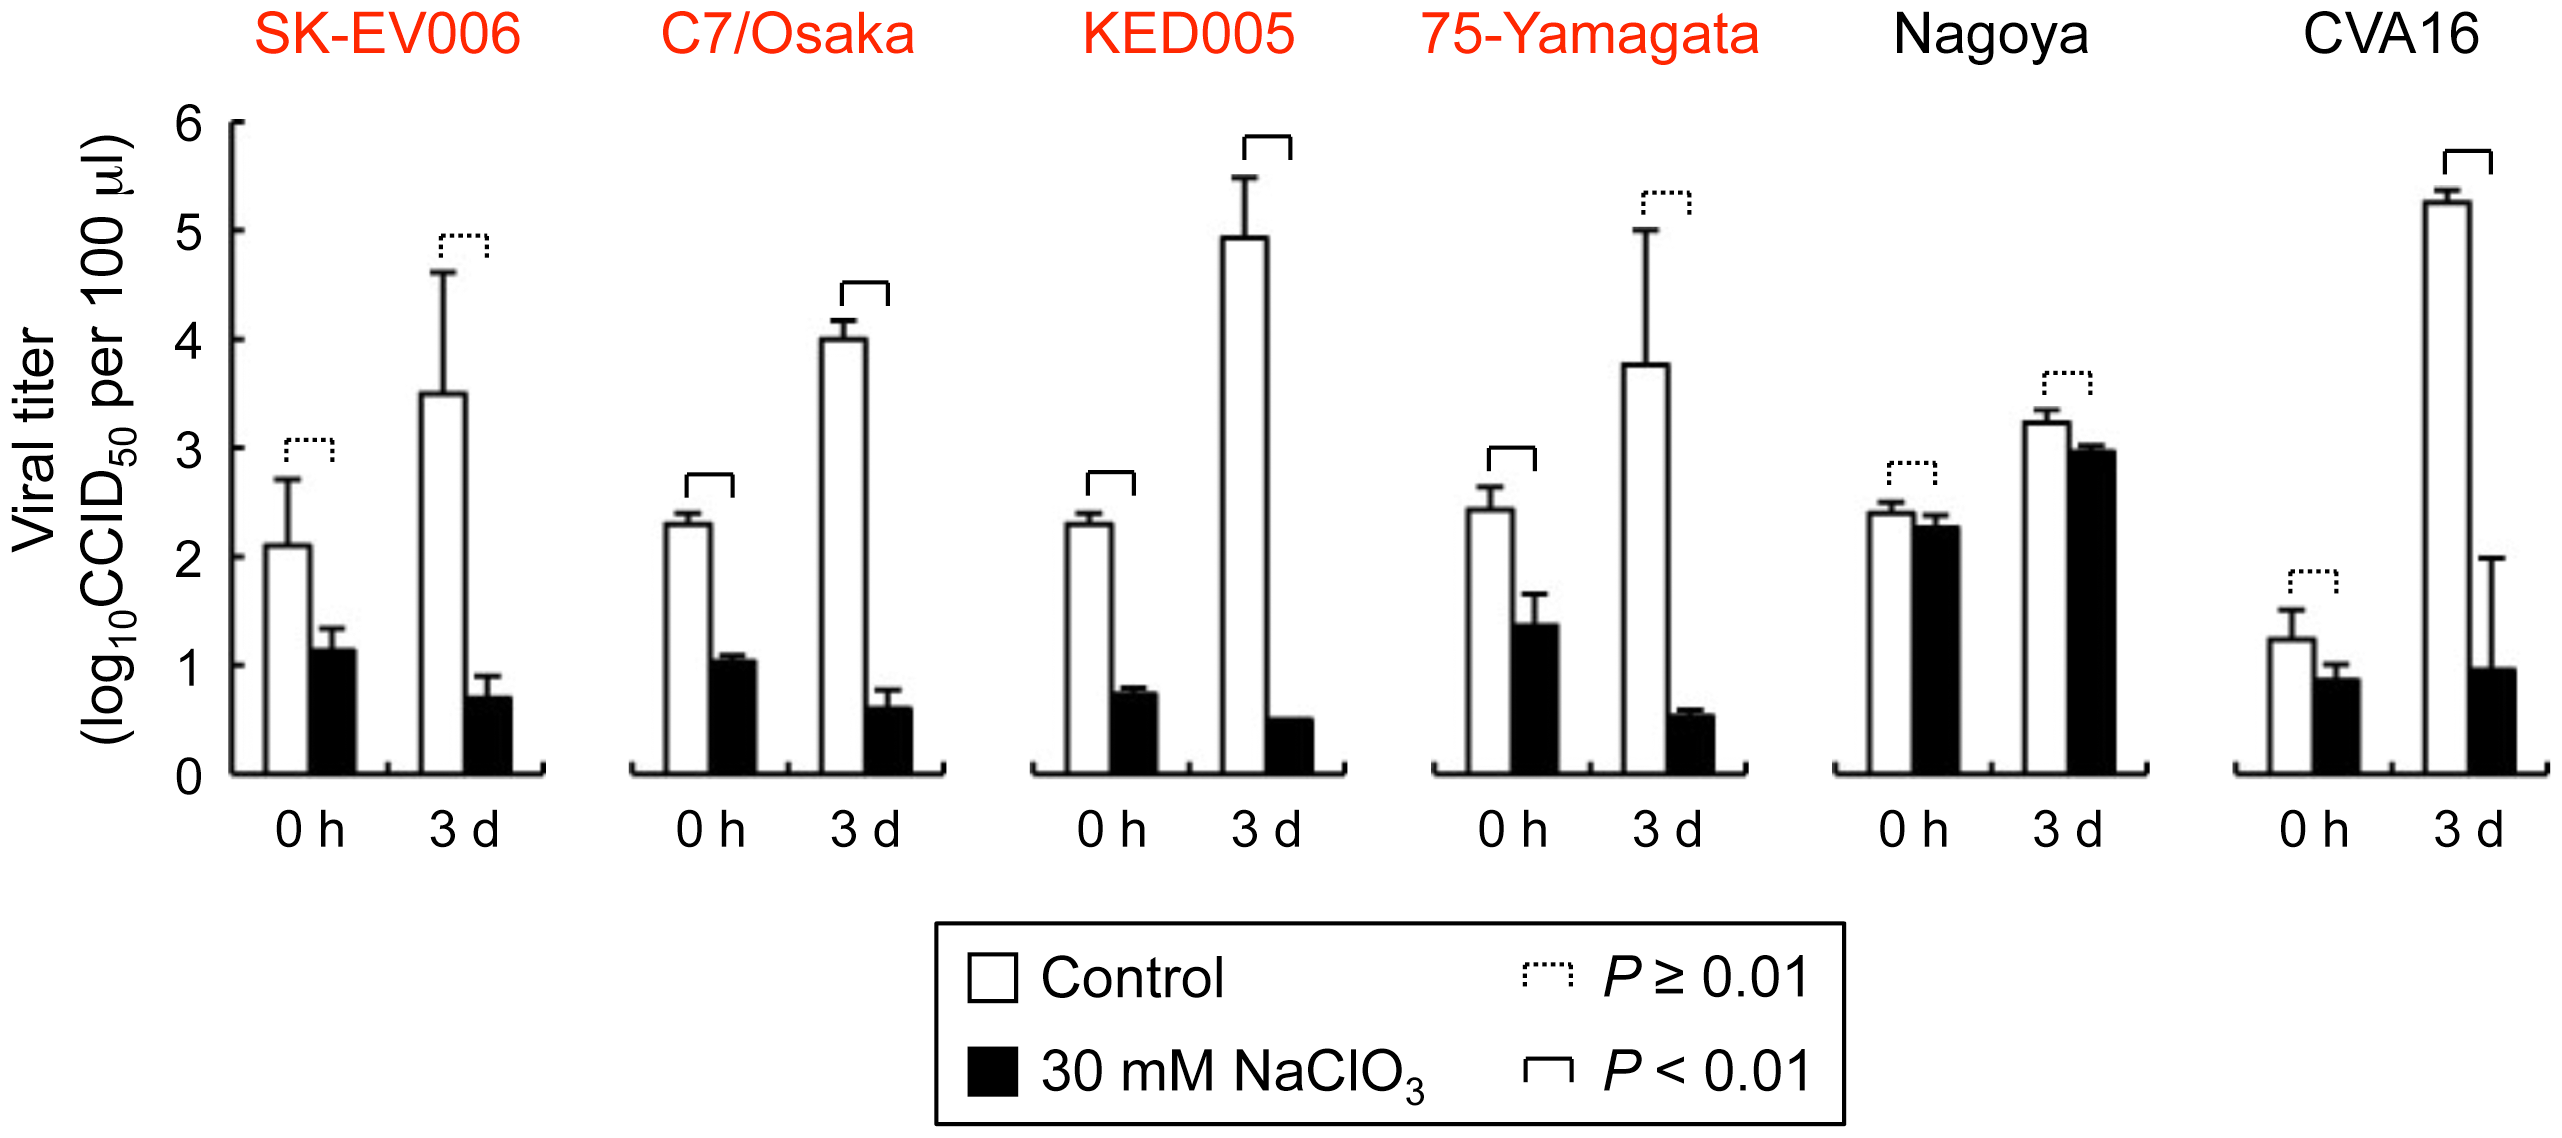 Replication of five EV71 strains and coxsackievirus A16 (CVA16) in Jurkat T cells in the presence of sodium chlorate.